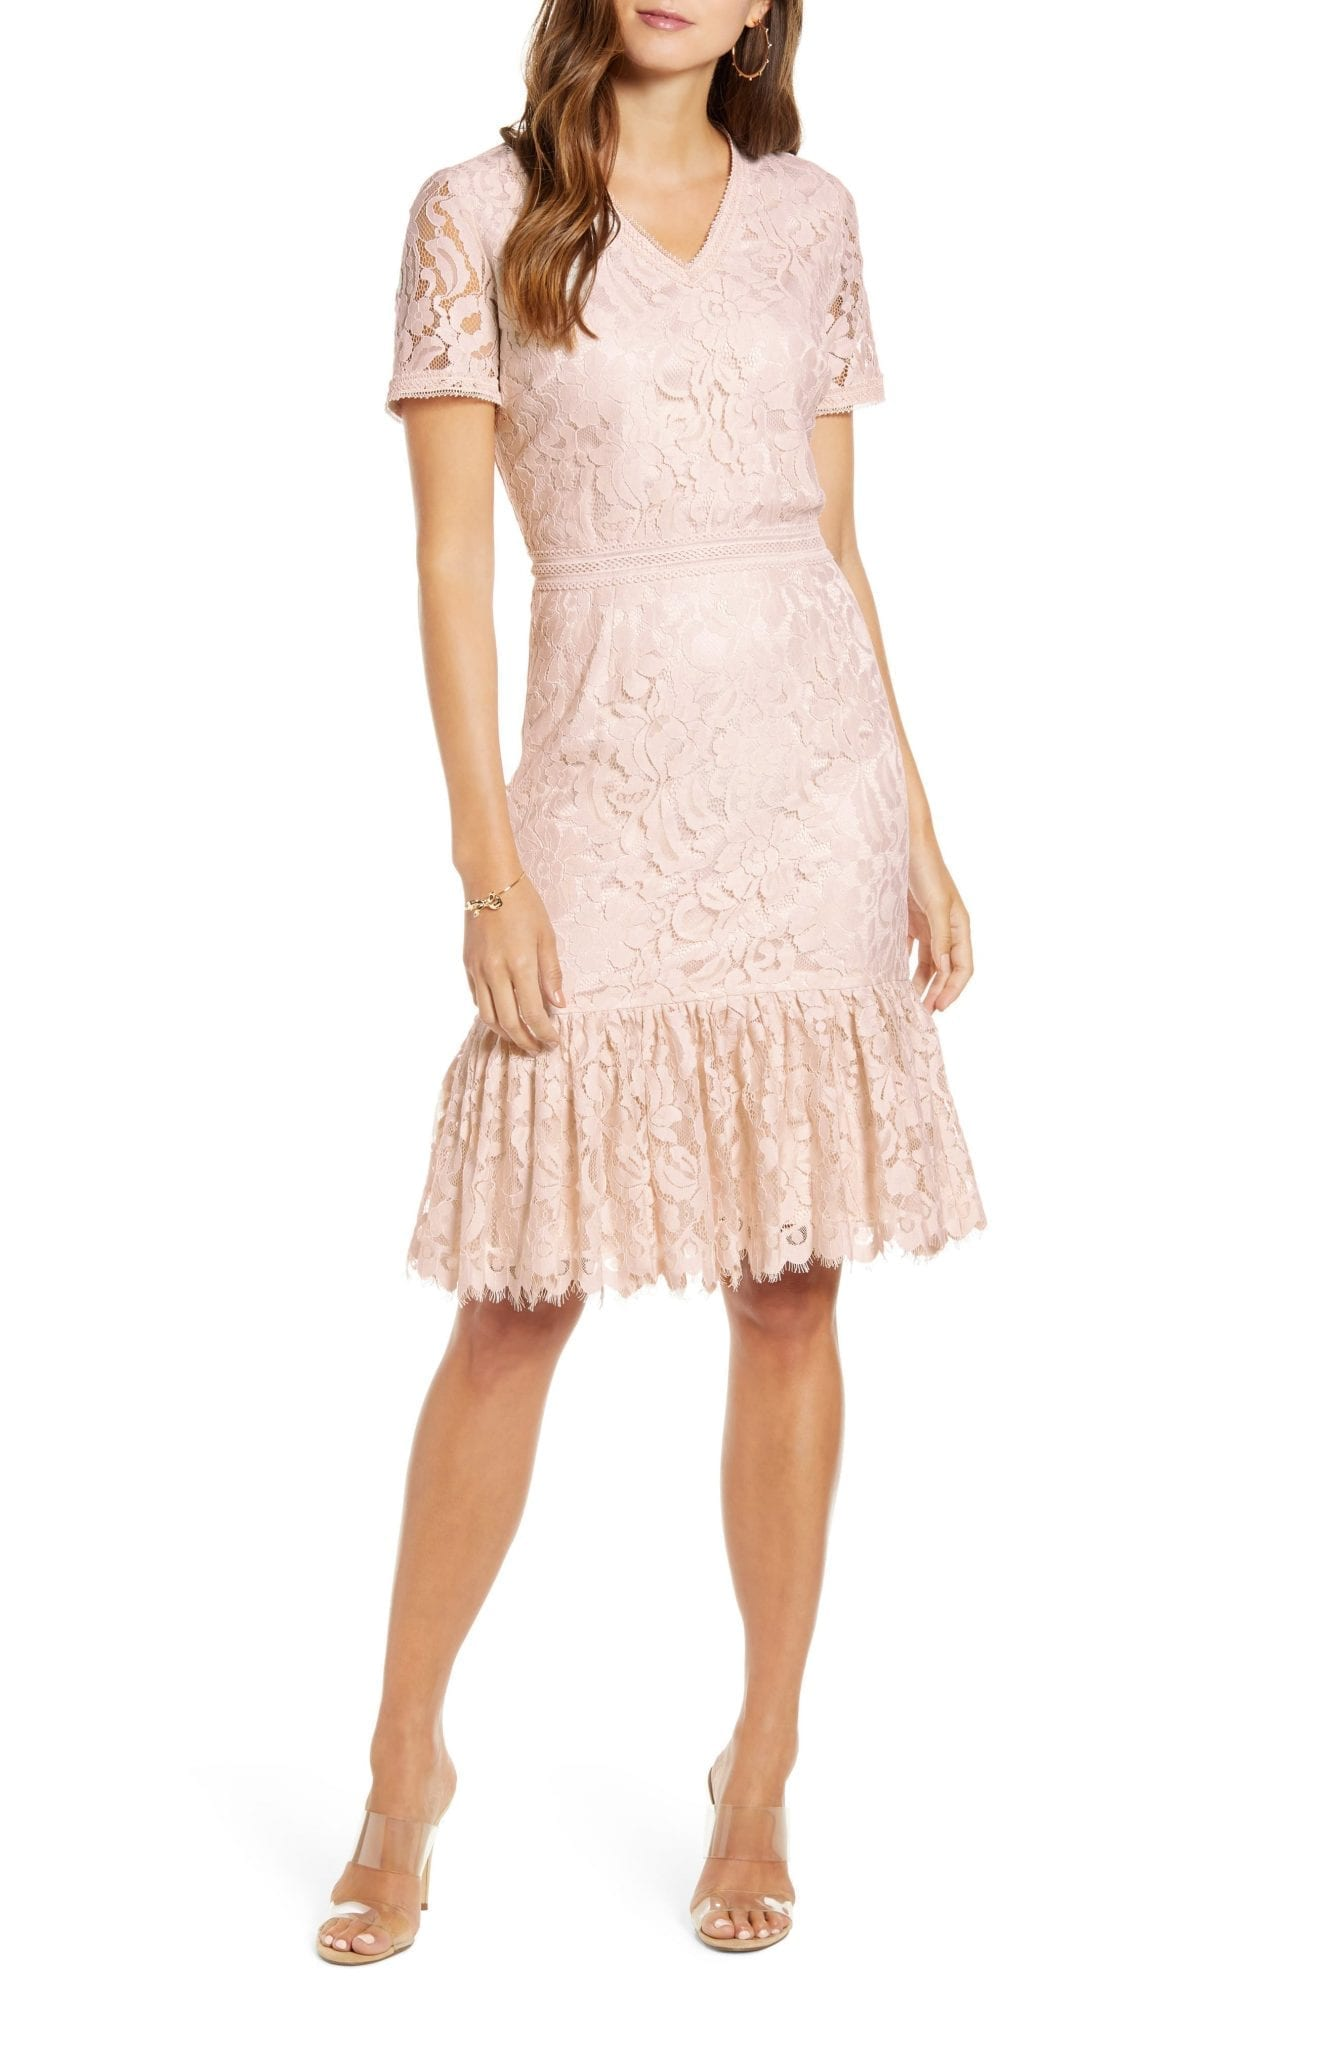 RACHEL PARCELL Lace Ruffle Hem Dress